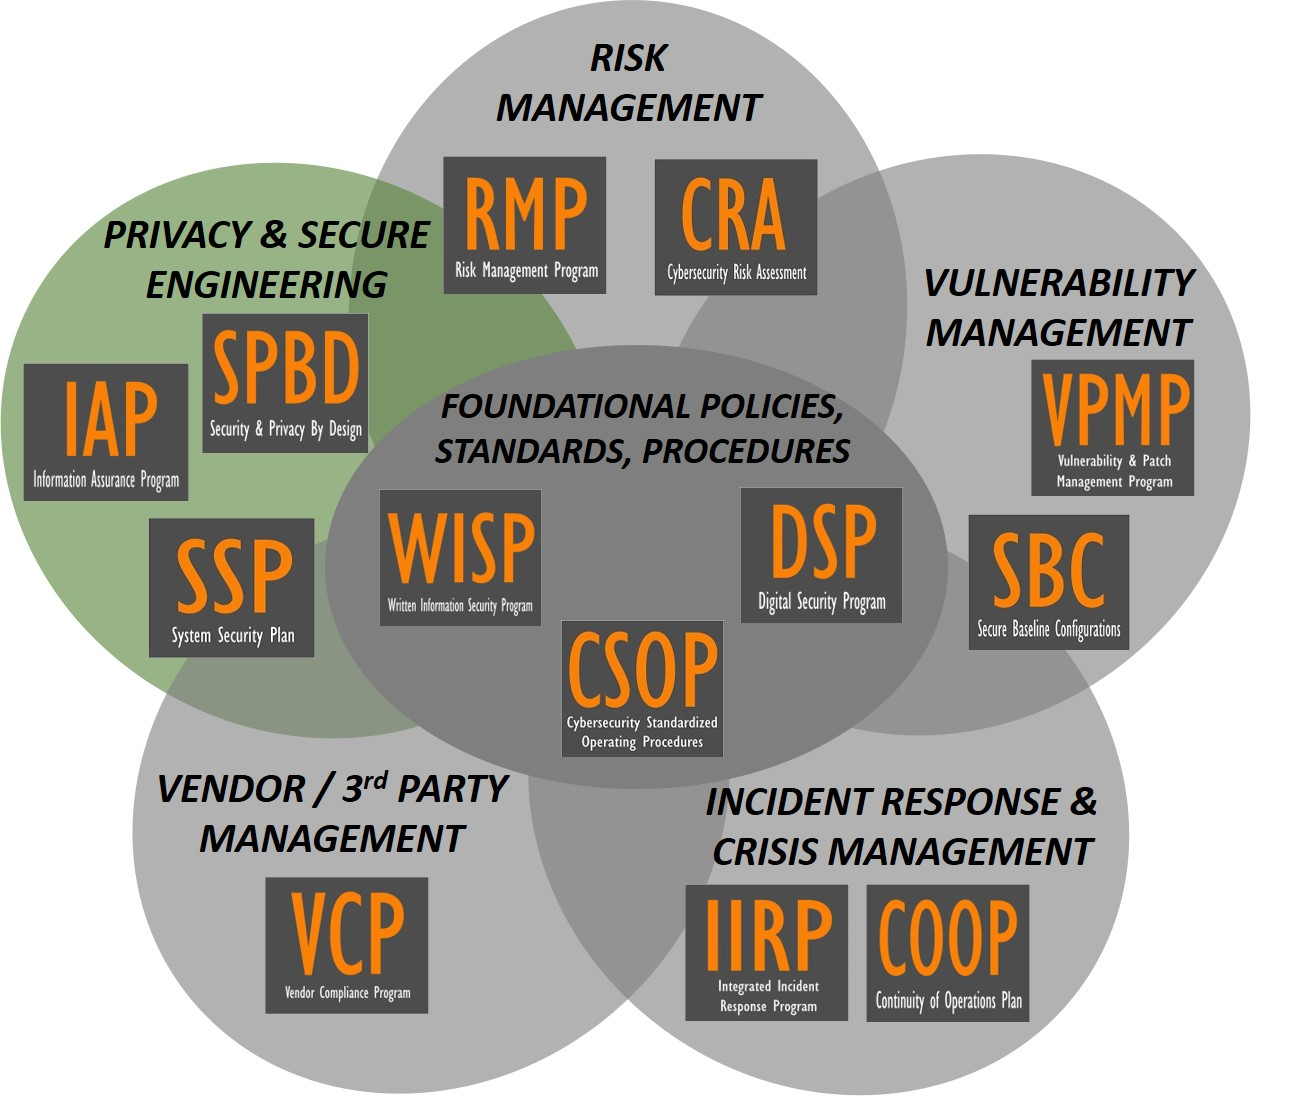 product-selection-2020.1-cybersecurity-audit-preparation-eu-gdpr-cybersecurity-for-privacy-by-design-program.jpg